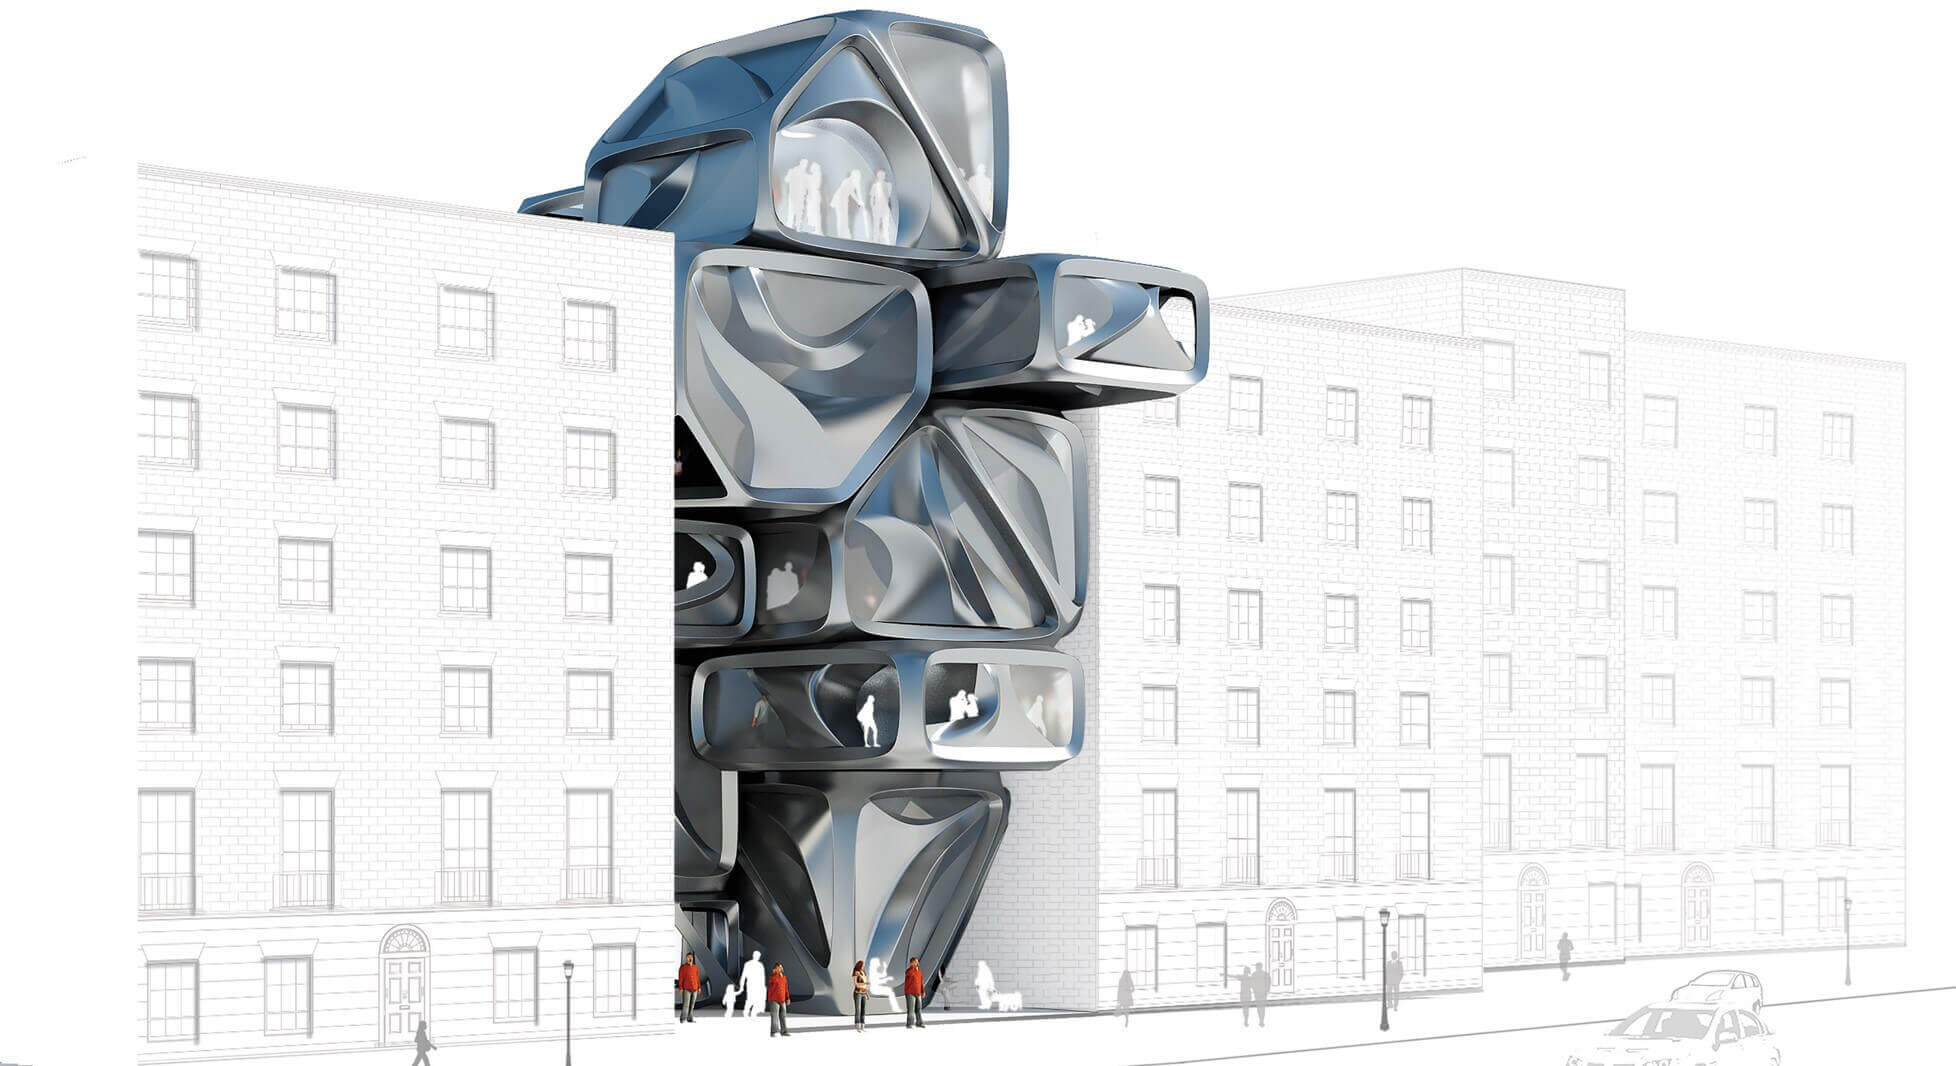 3D illustration of made-to-order housing of the future that promotes communal living